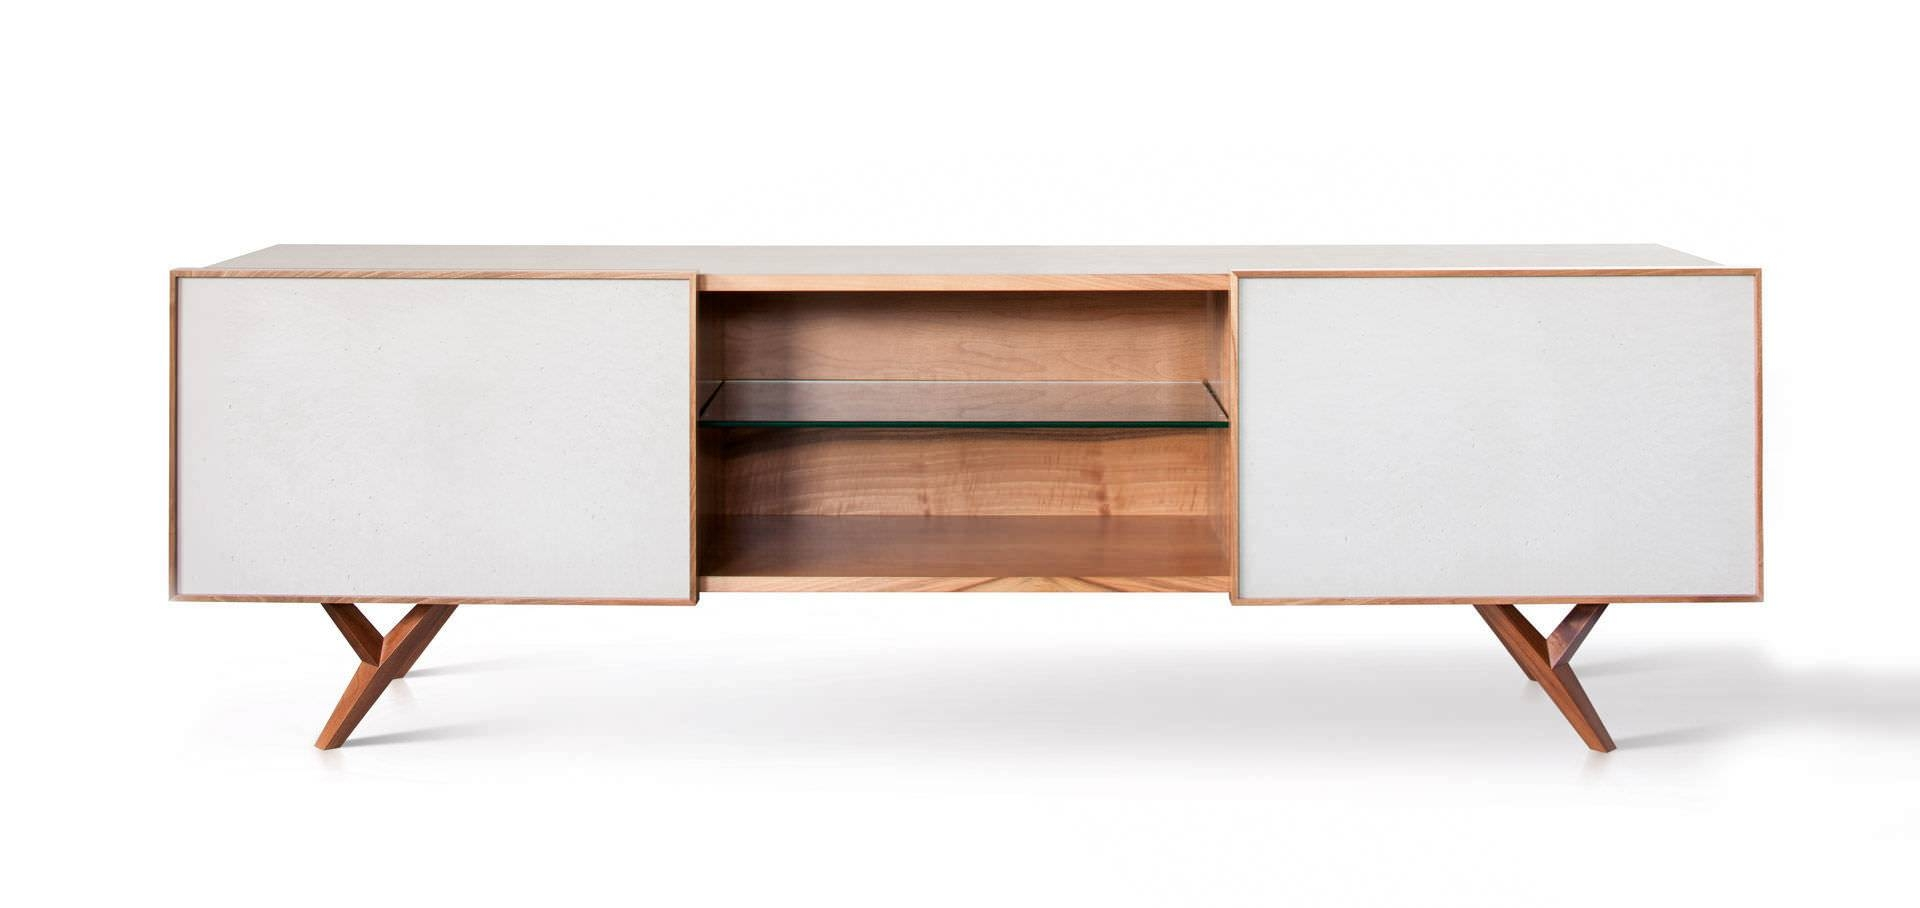 Amüsant Sideboard Modern Dekoration Von Furniture: Beautiful Profile For Living Room With